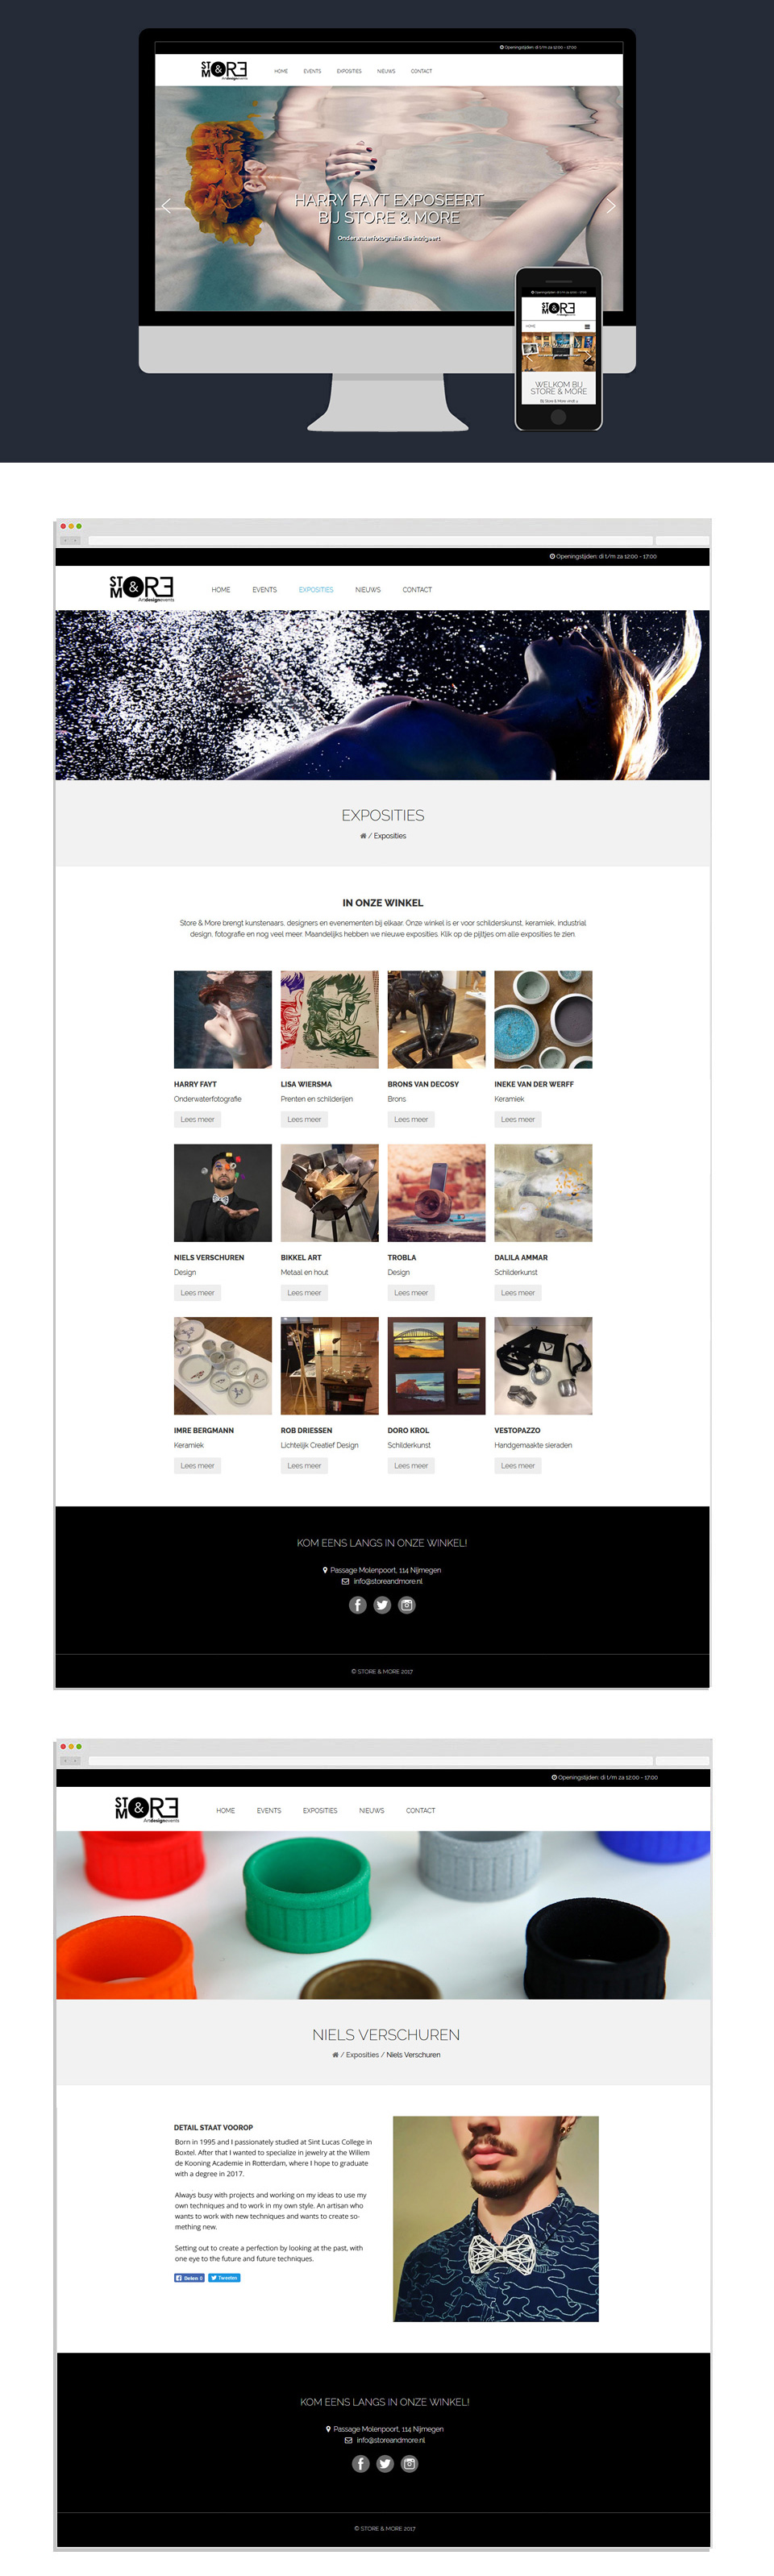 Webdesign - Store & More